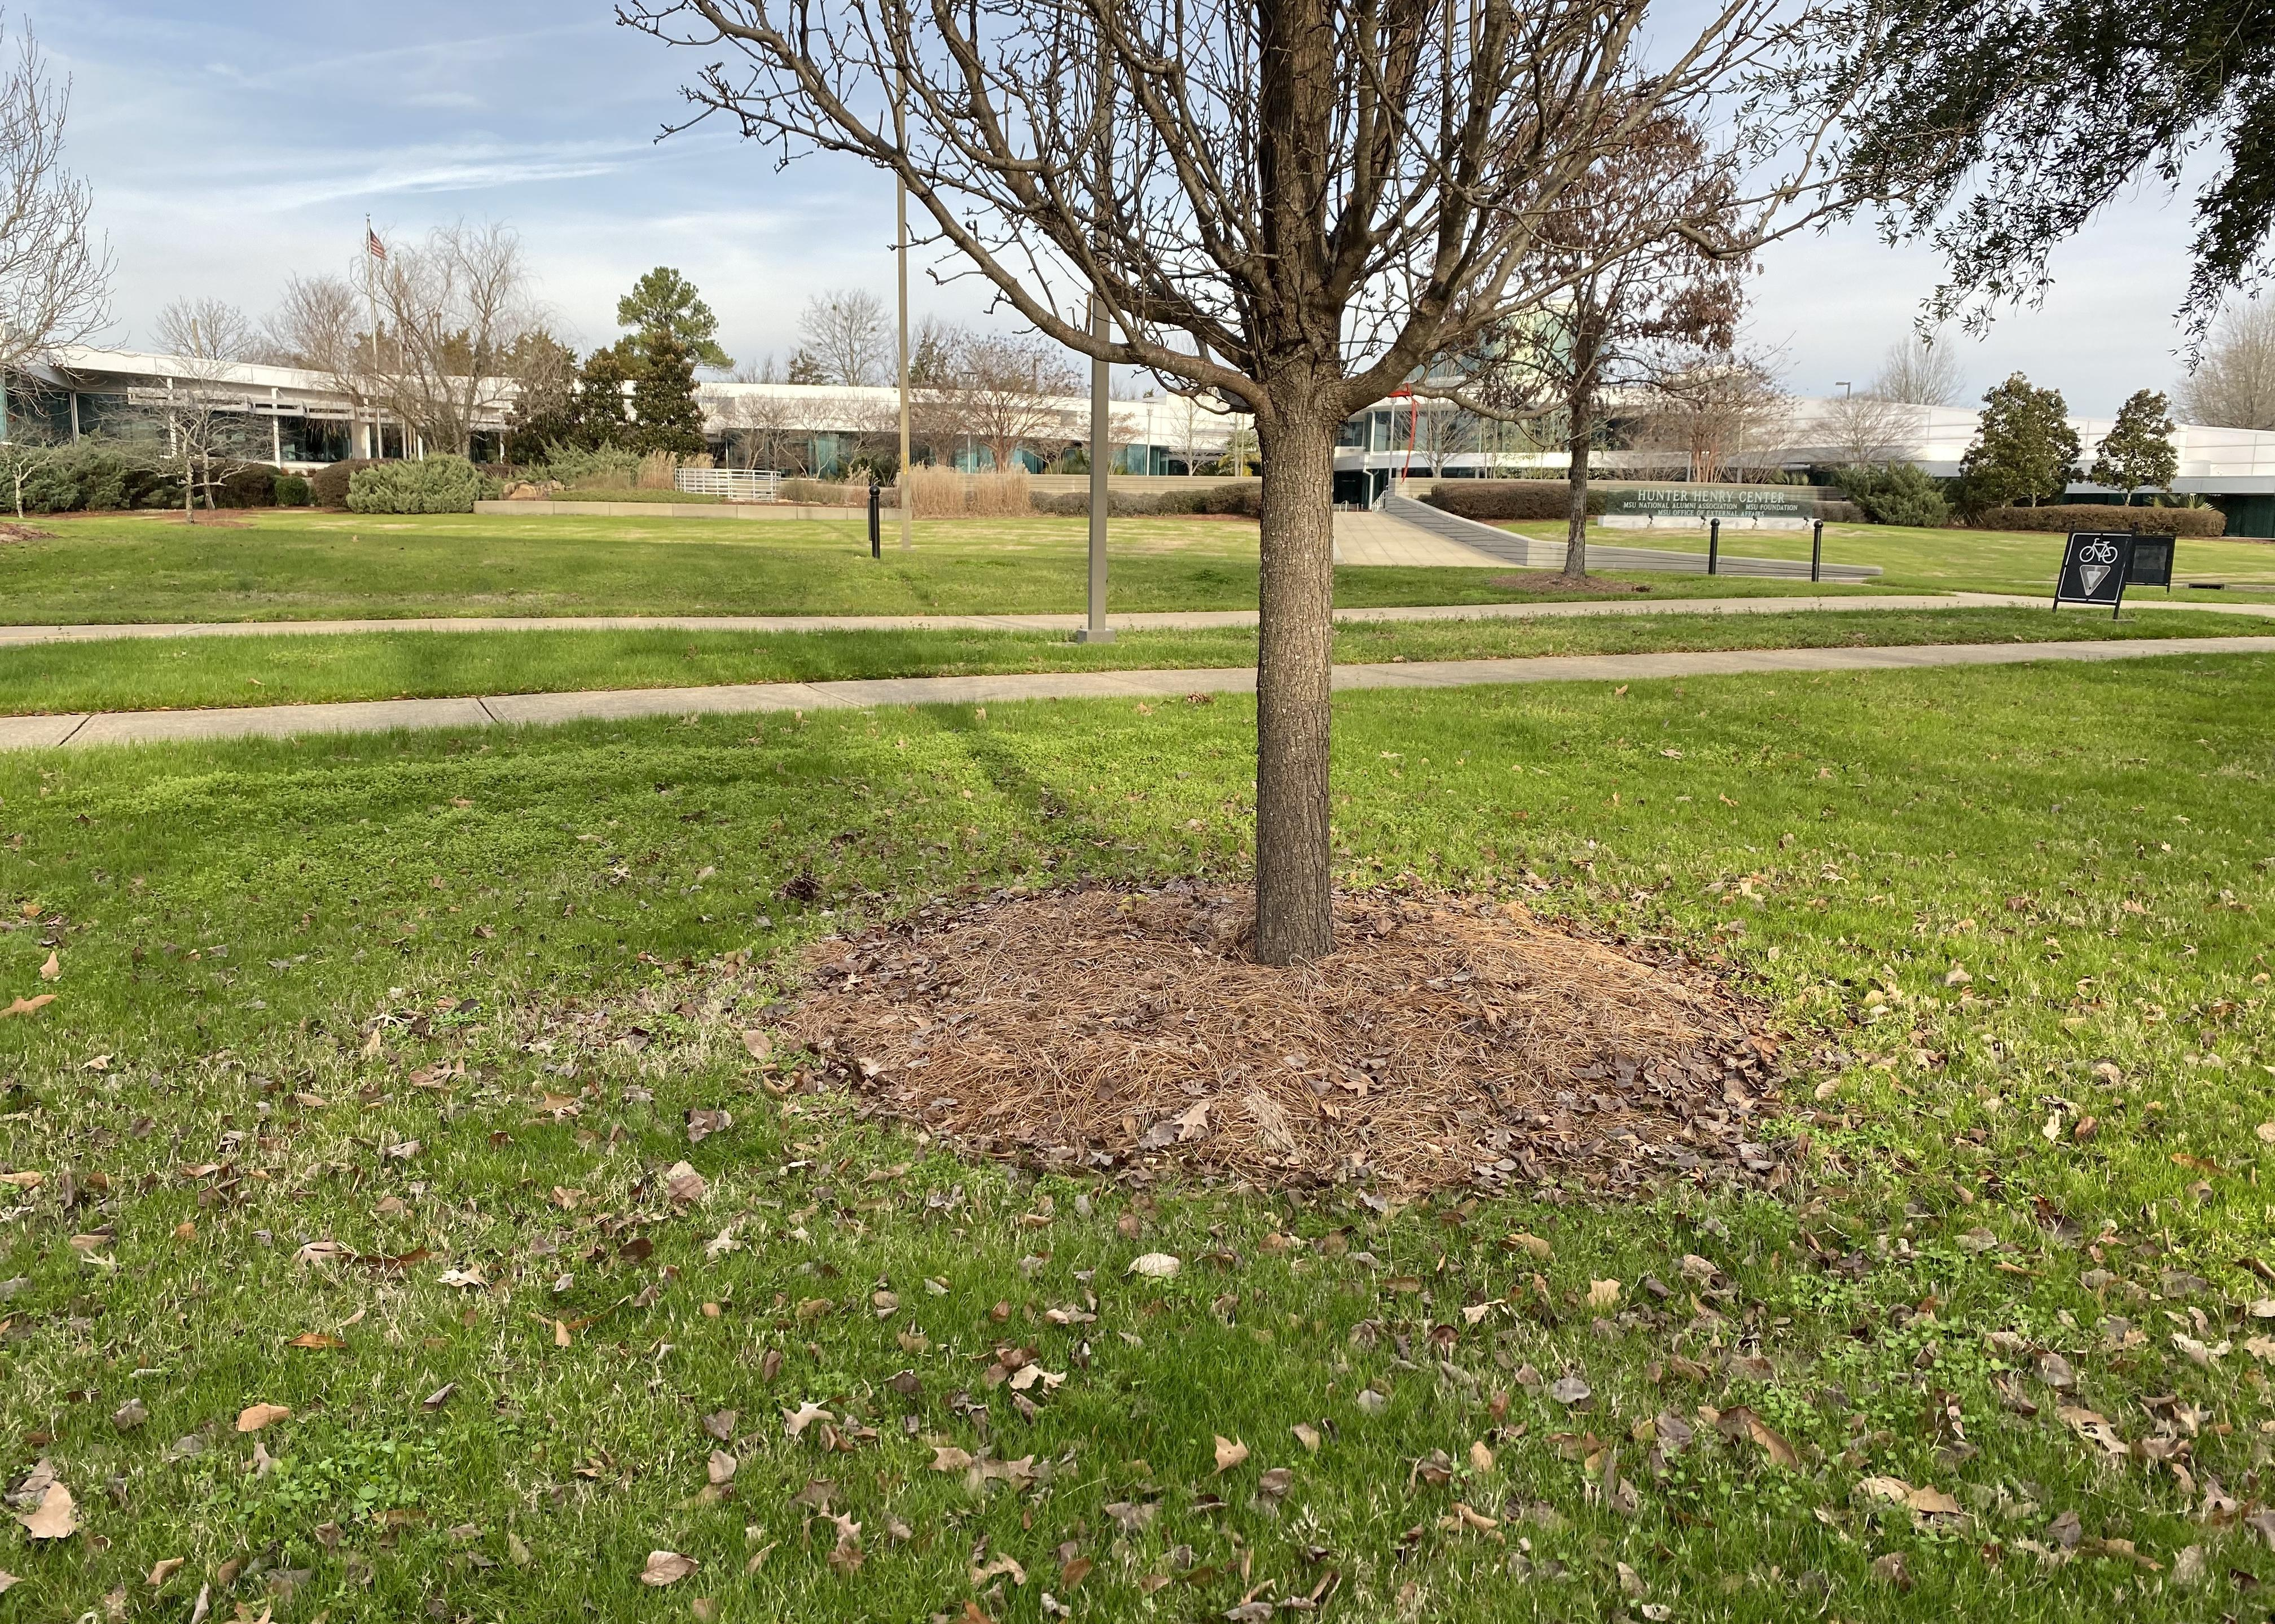 A tree planted in green grass with brown mulch around it.